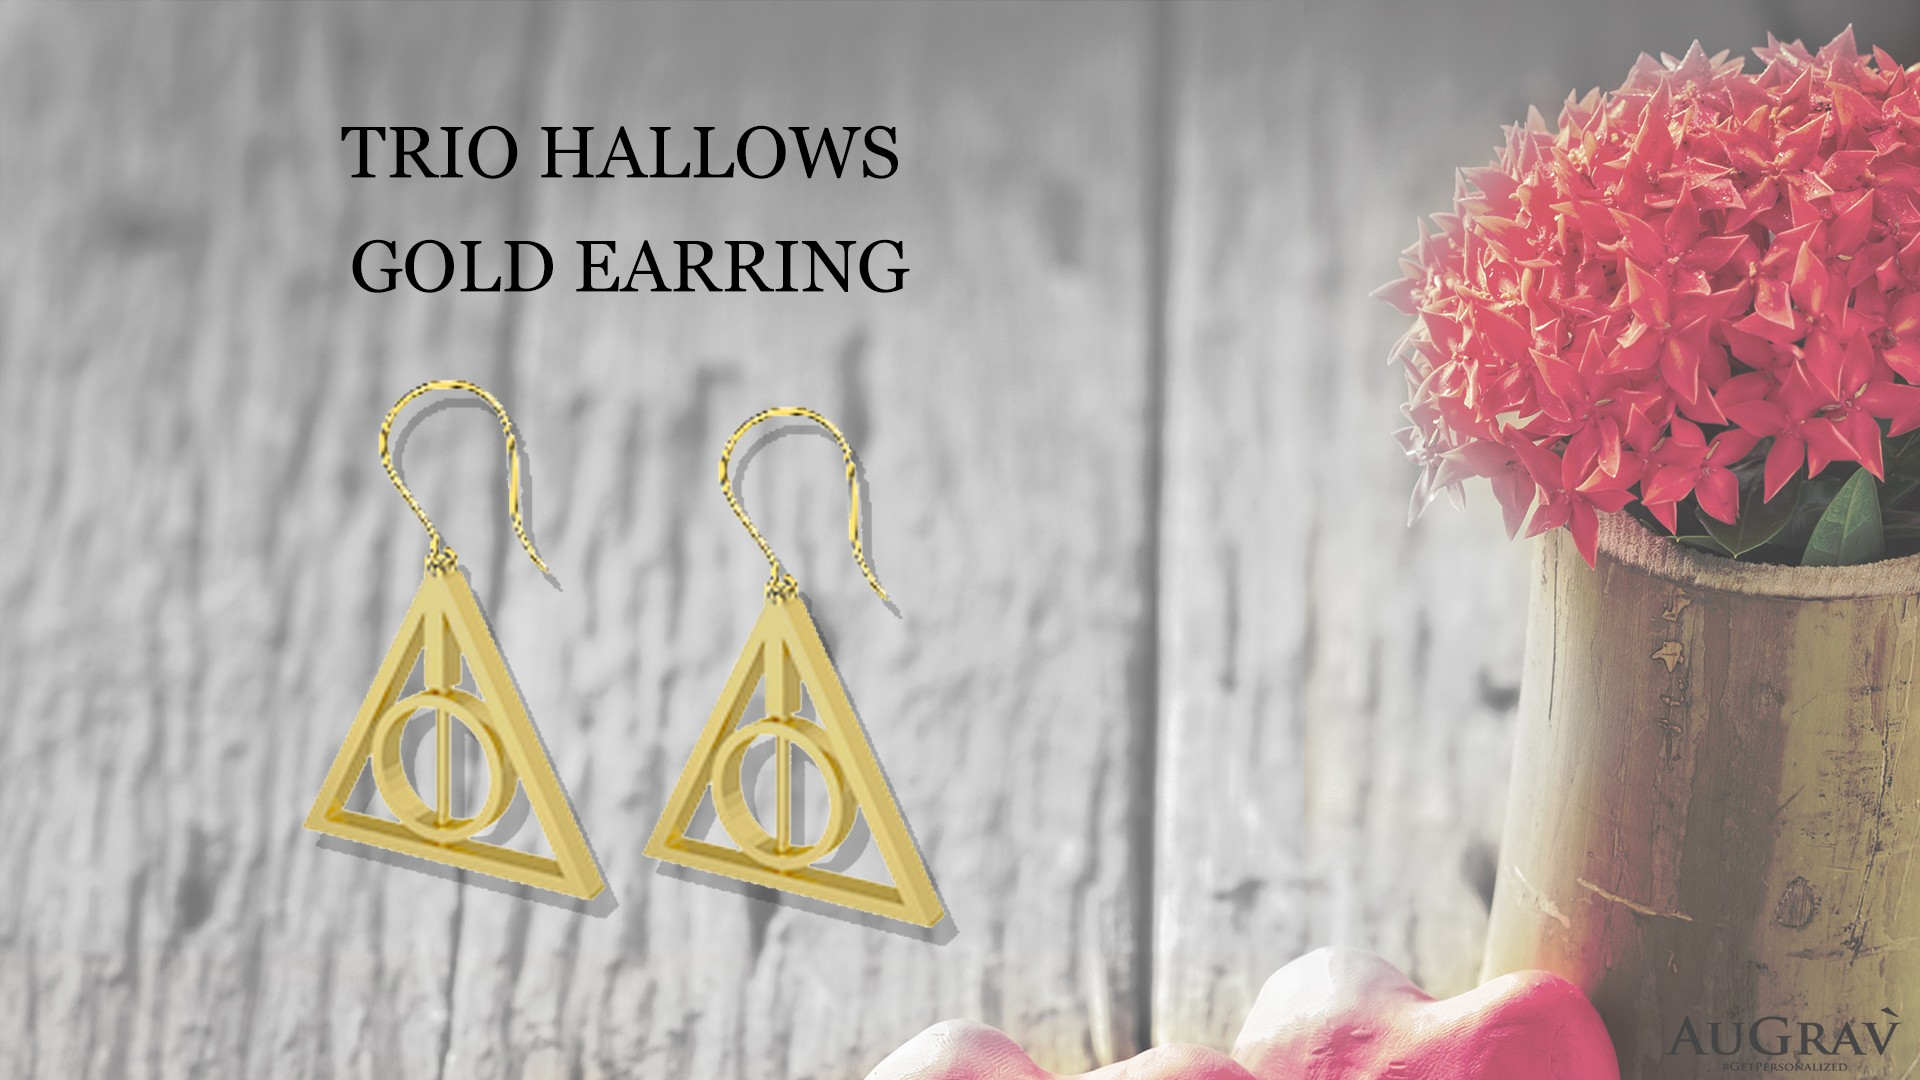 TRIO HALLOWS GOLD EARRING